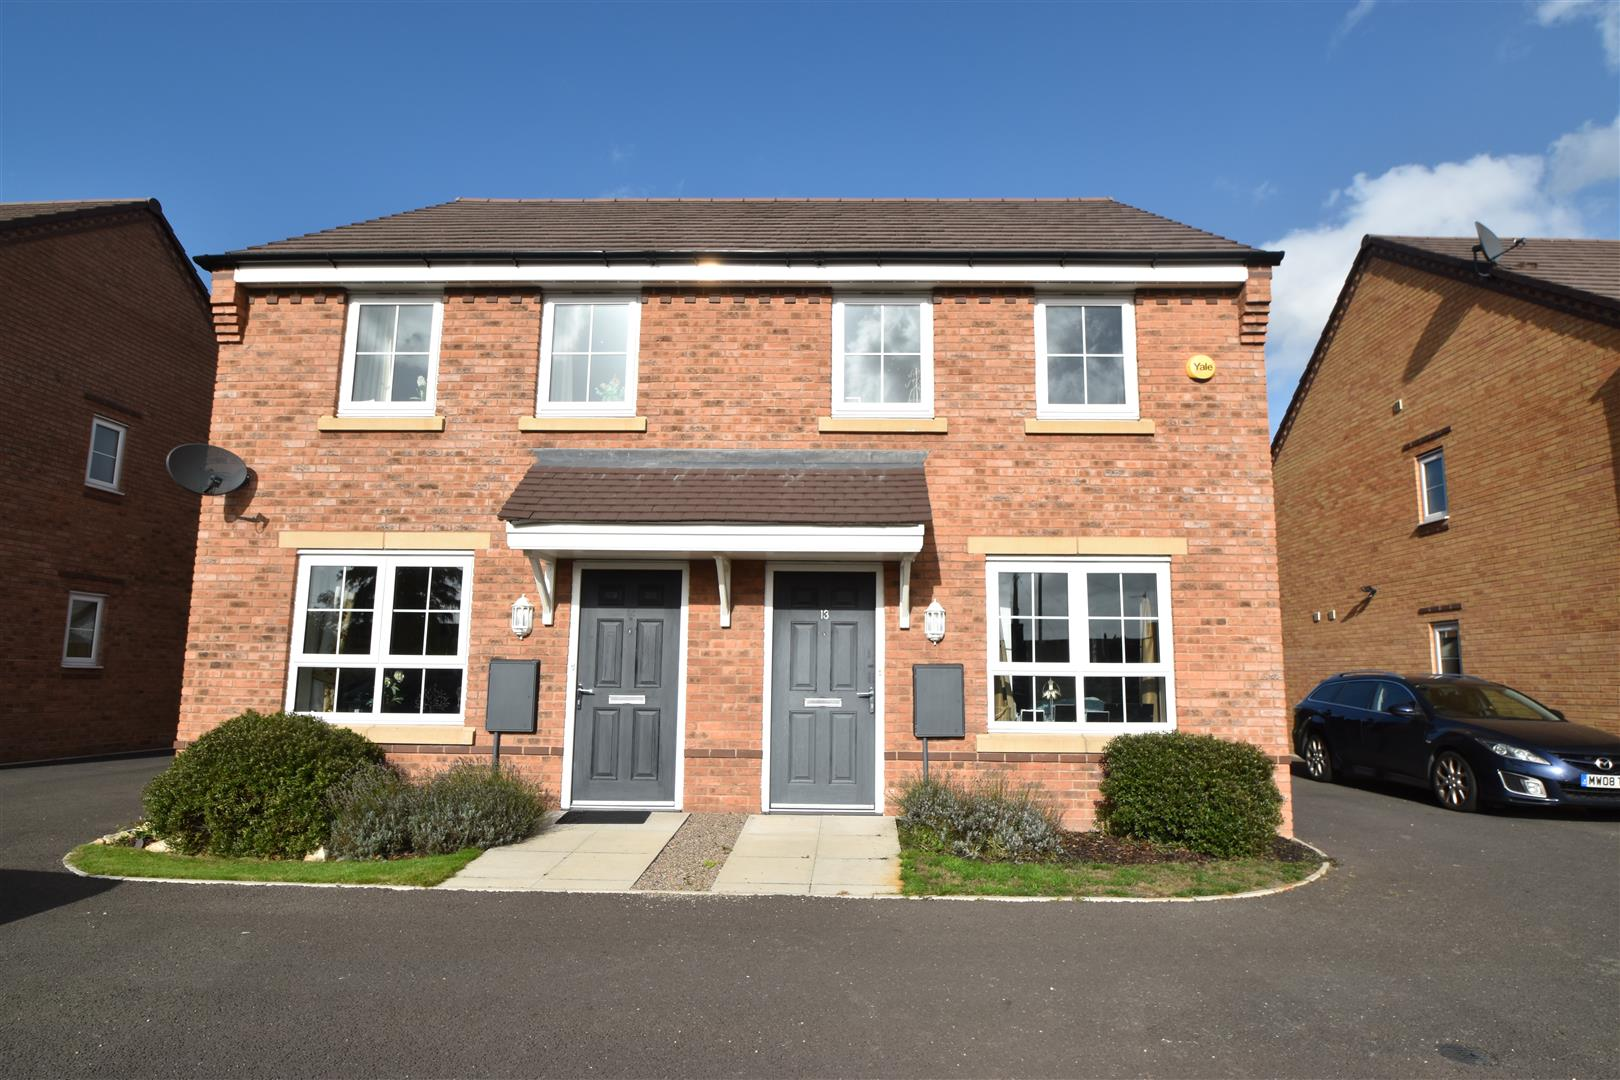 2 Bedrooms House for sale in Chalmers Close, Worcester